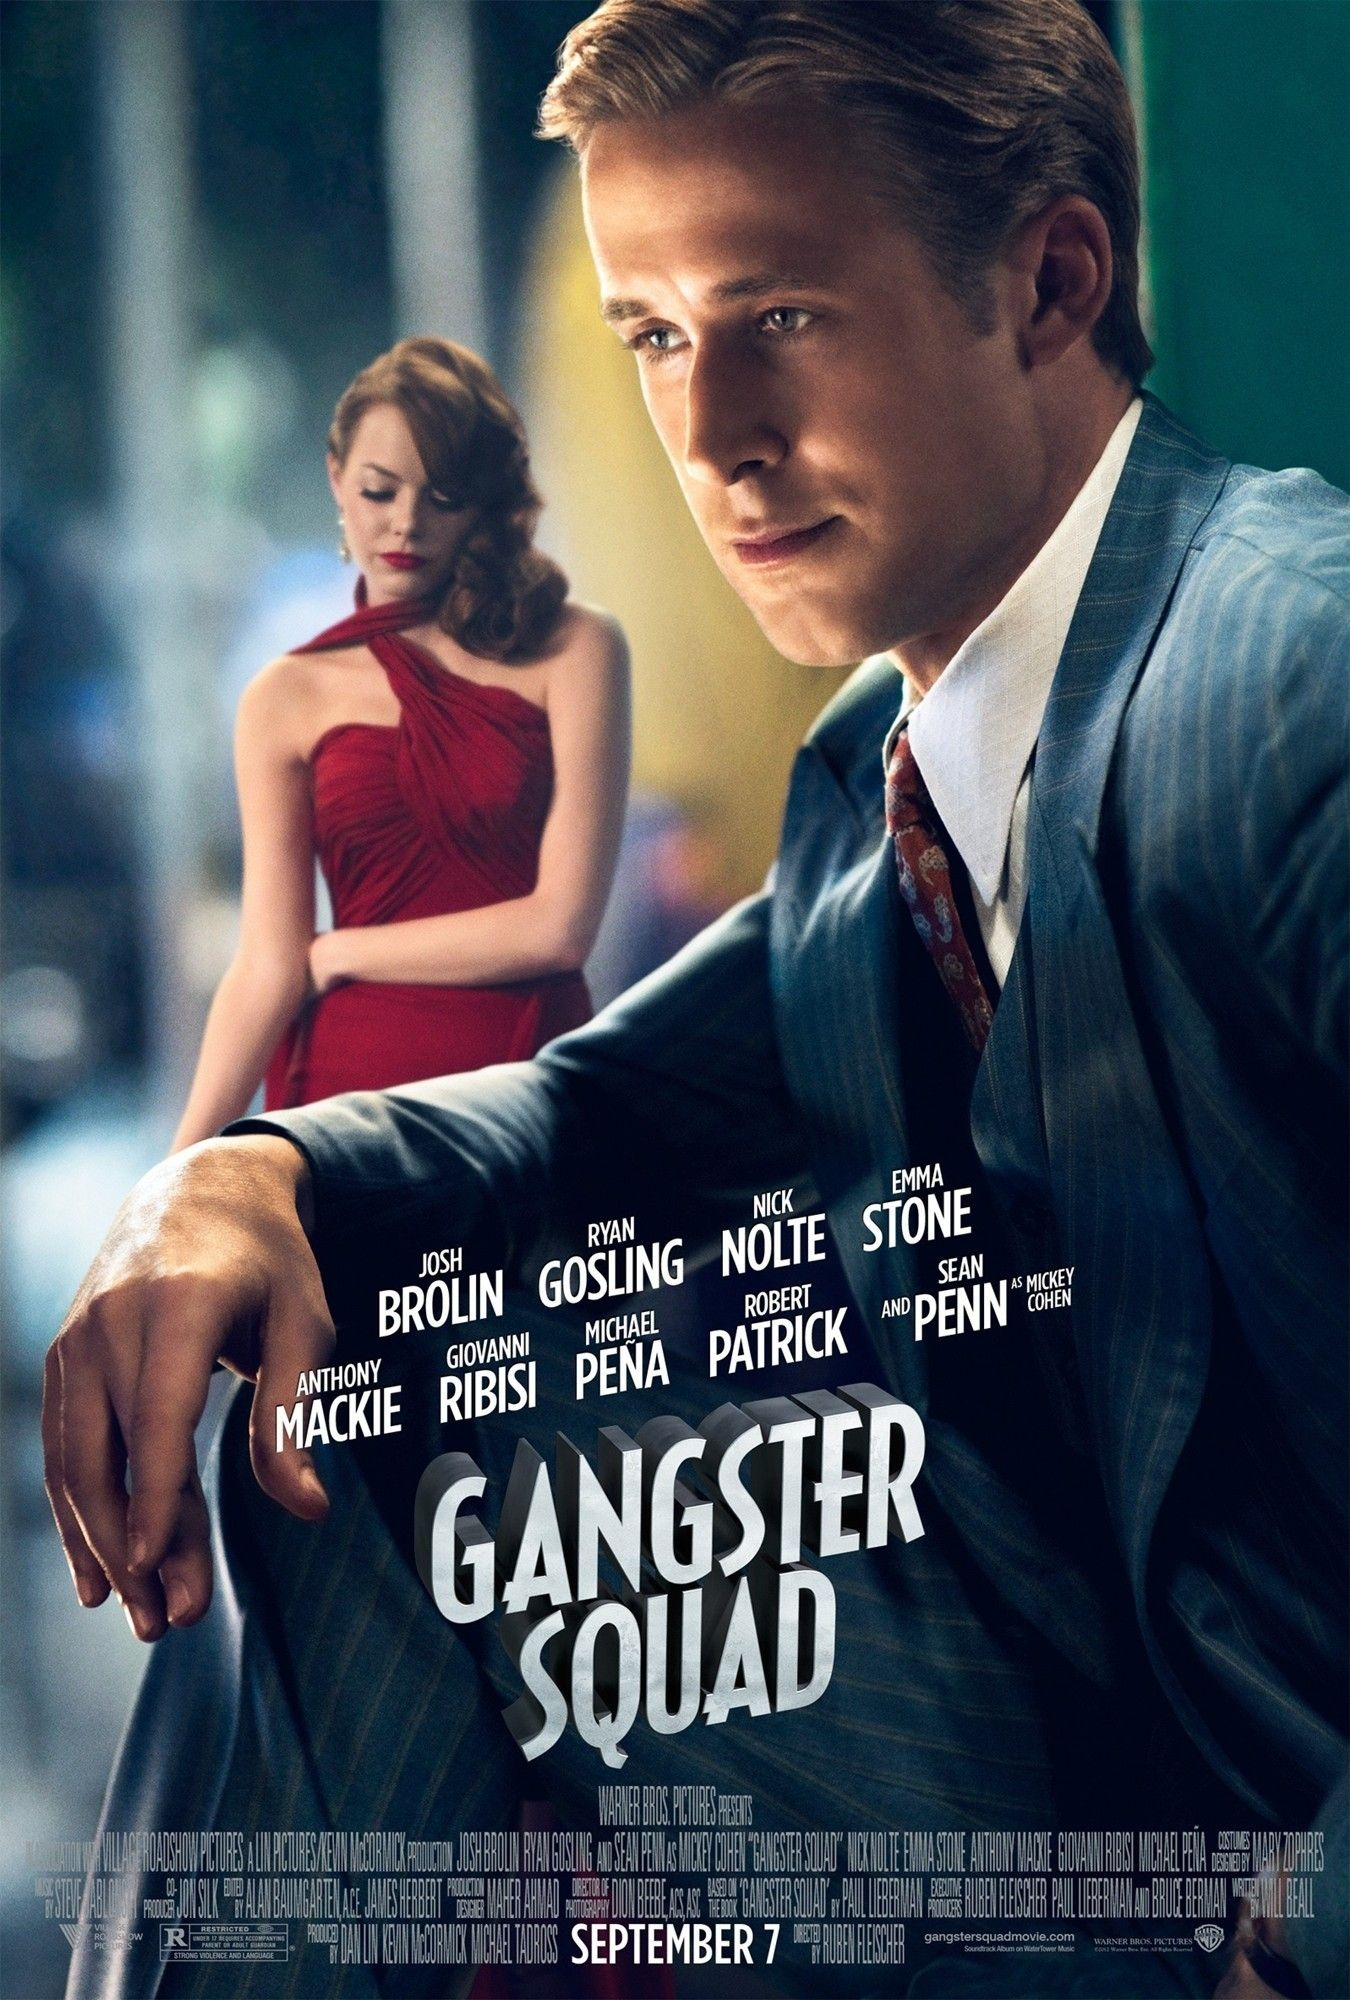 Gangster Squad - Movie Poster #4 (Original)